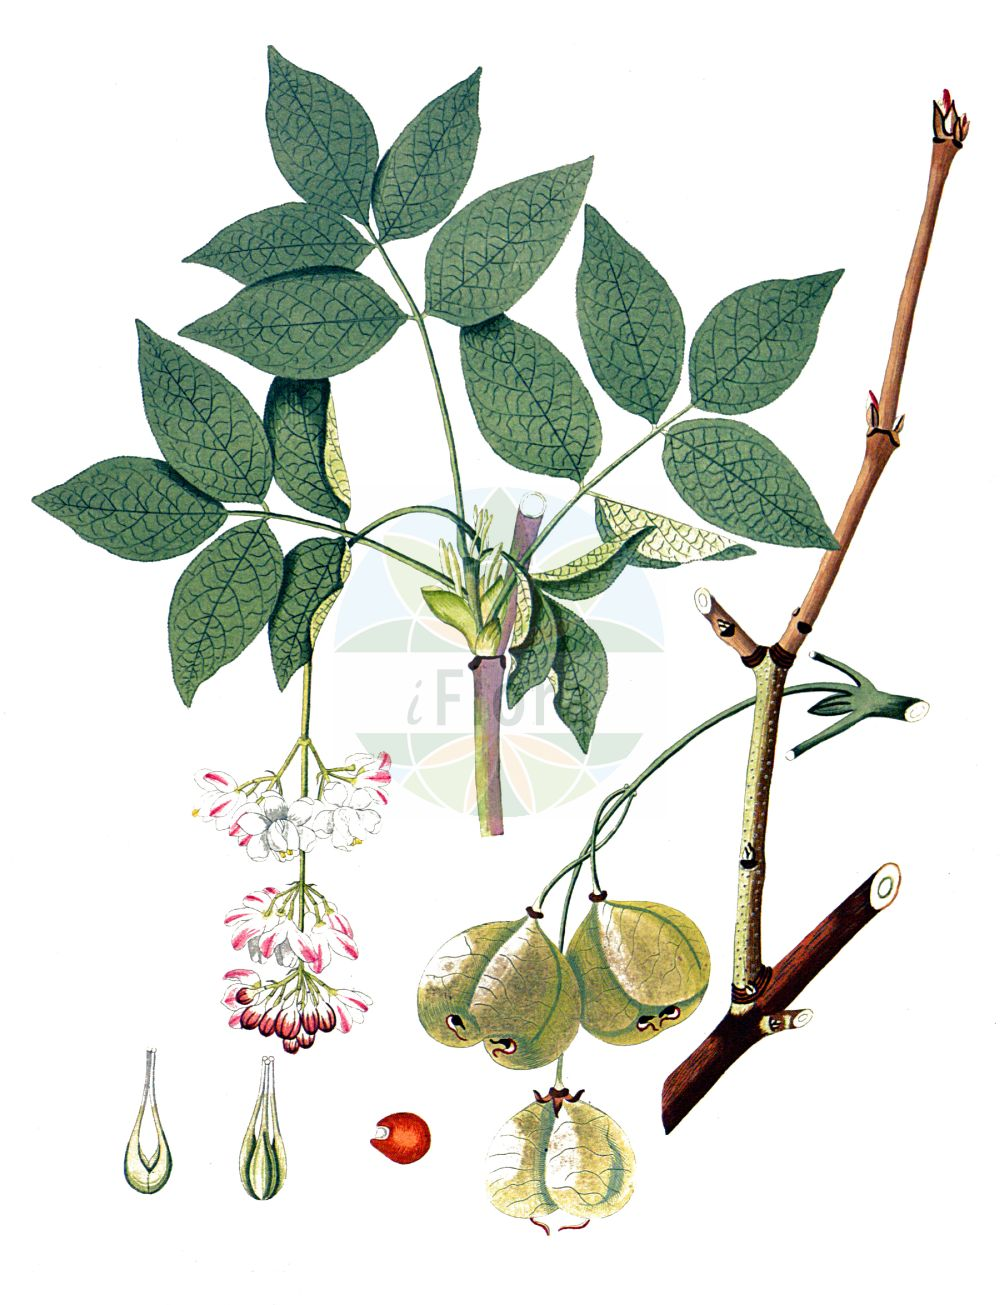 Historische Abbildung von Staphylea pinnata (Gewoehnliche Pimpernuss - Bladdernut). Das Bild zeigt Blatt, Bluete, Frucht und Same. ---- Historical Drawing of Staphylea pinnata (Gewoehnliche Pimpernuss - Bladdernut).The image is showing leaf, flower, fruit and seed.(Staphylea pinnata,Gewoehnliche Pimpernuss,Bladdernut,Staphylea pinnata,Gewoehnliche Pimpernuss,Paternosterbaum,Pimpernuss,Bladdernut,European Bladdernut,Staphylea,Pimpernuss,Bladdernut,Staphyleaceae,Pimpernussgewaechse,Bladdernut family,Blatt,Bluete,Frucht,Same,leaf,flower,fruit,seed,Krauss (1802f))